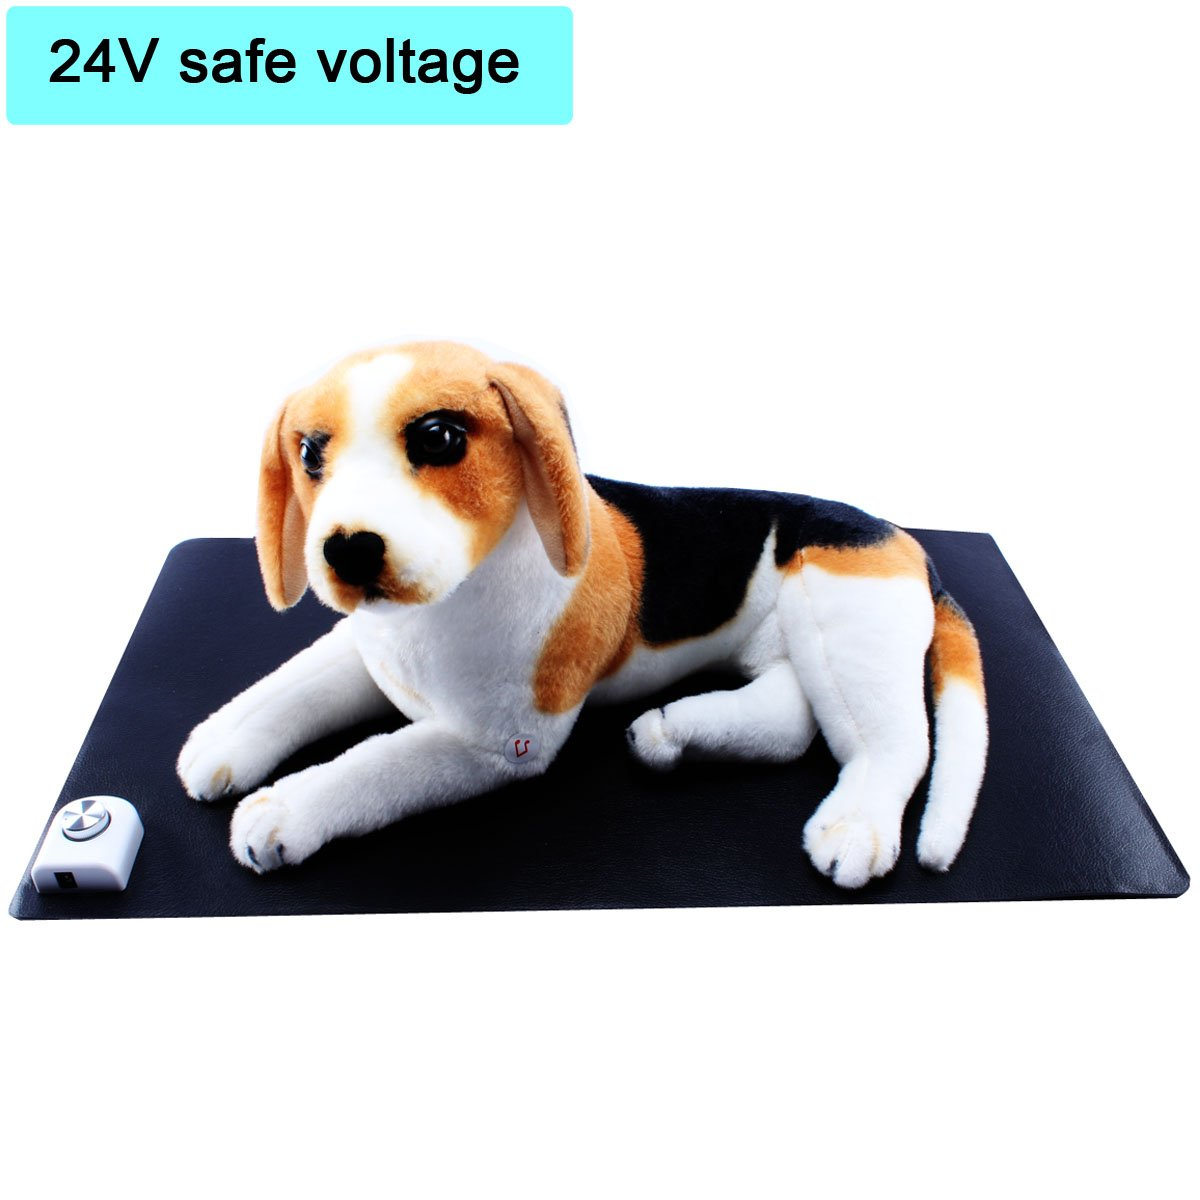 Black YADICO Pet Puppy Heating Pad, Adjustable Warming Pet Heat Mat for Dogs or Cats 24V Safe Voltage Waterproof Electric Heating Pad (Black)